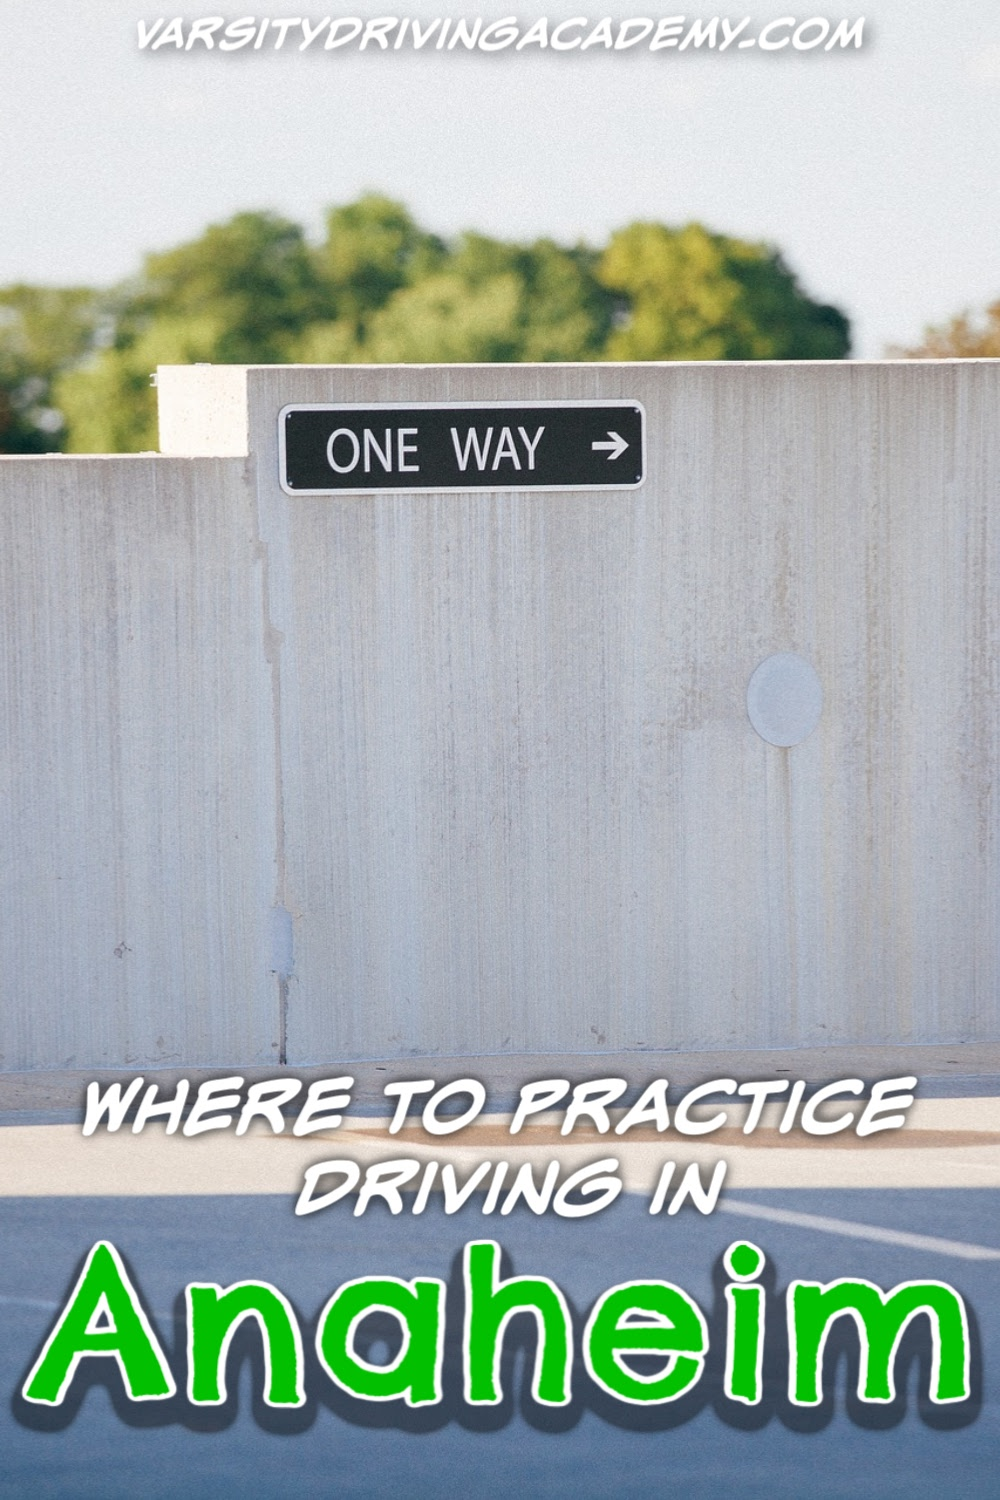 Driving students in Anaheim should know where to practice driving in Anaheim to make sure they can practice safely and improve their defensive driving skills.